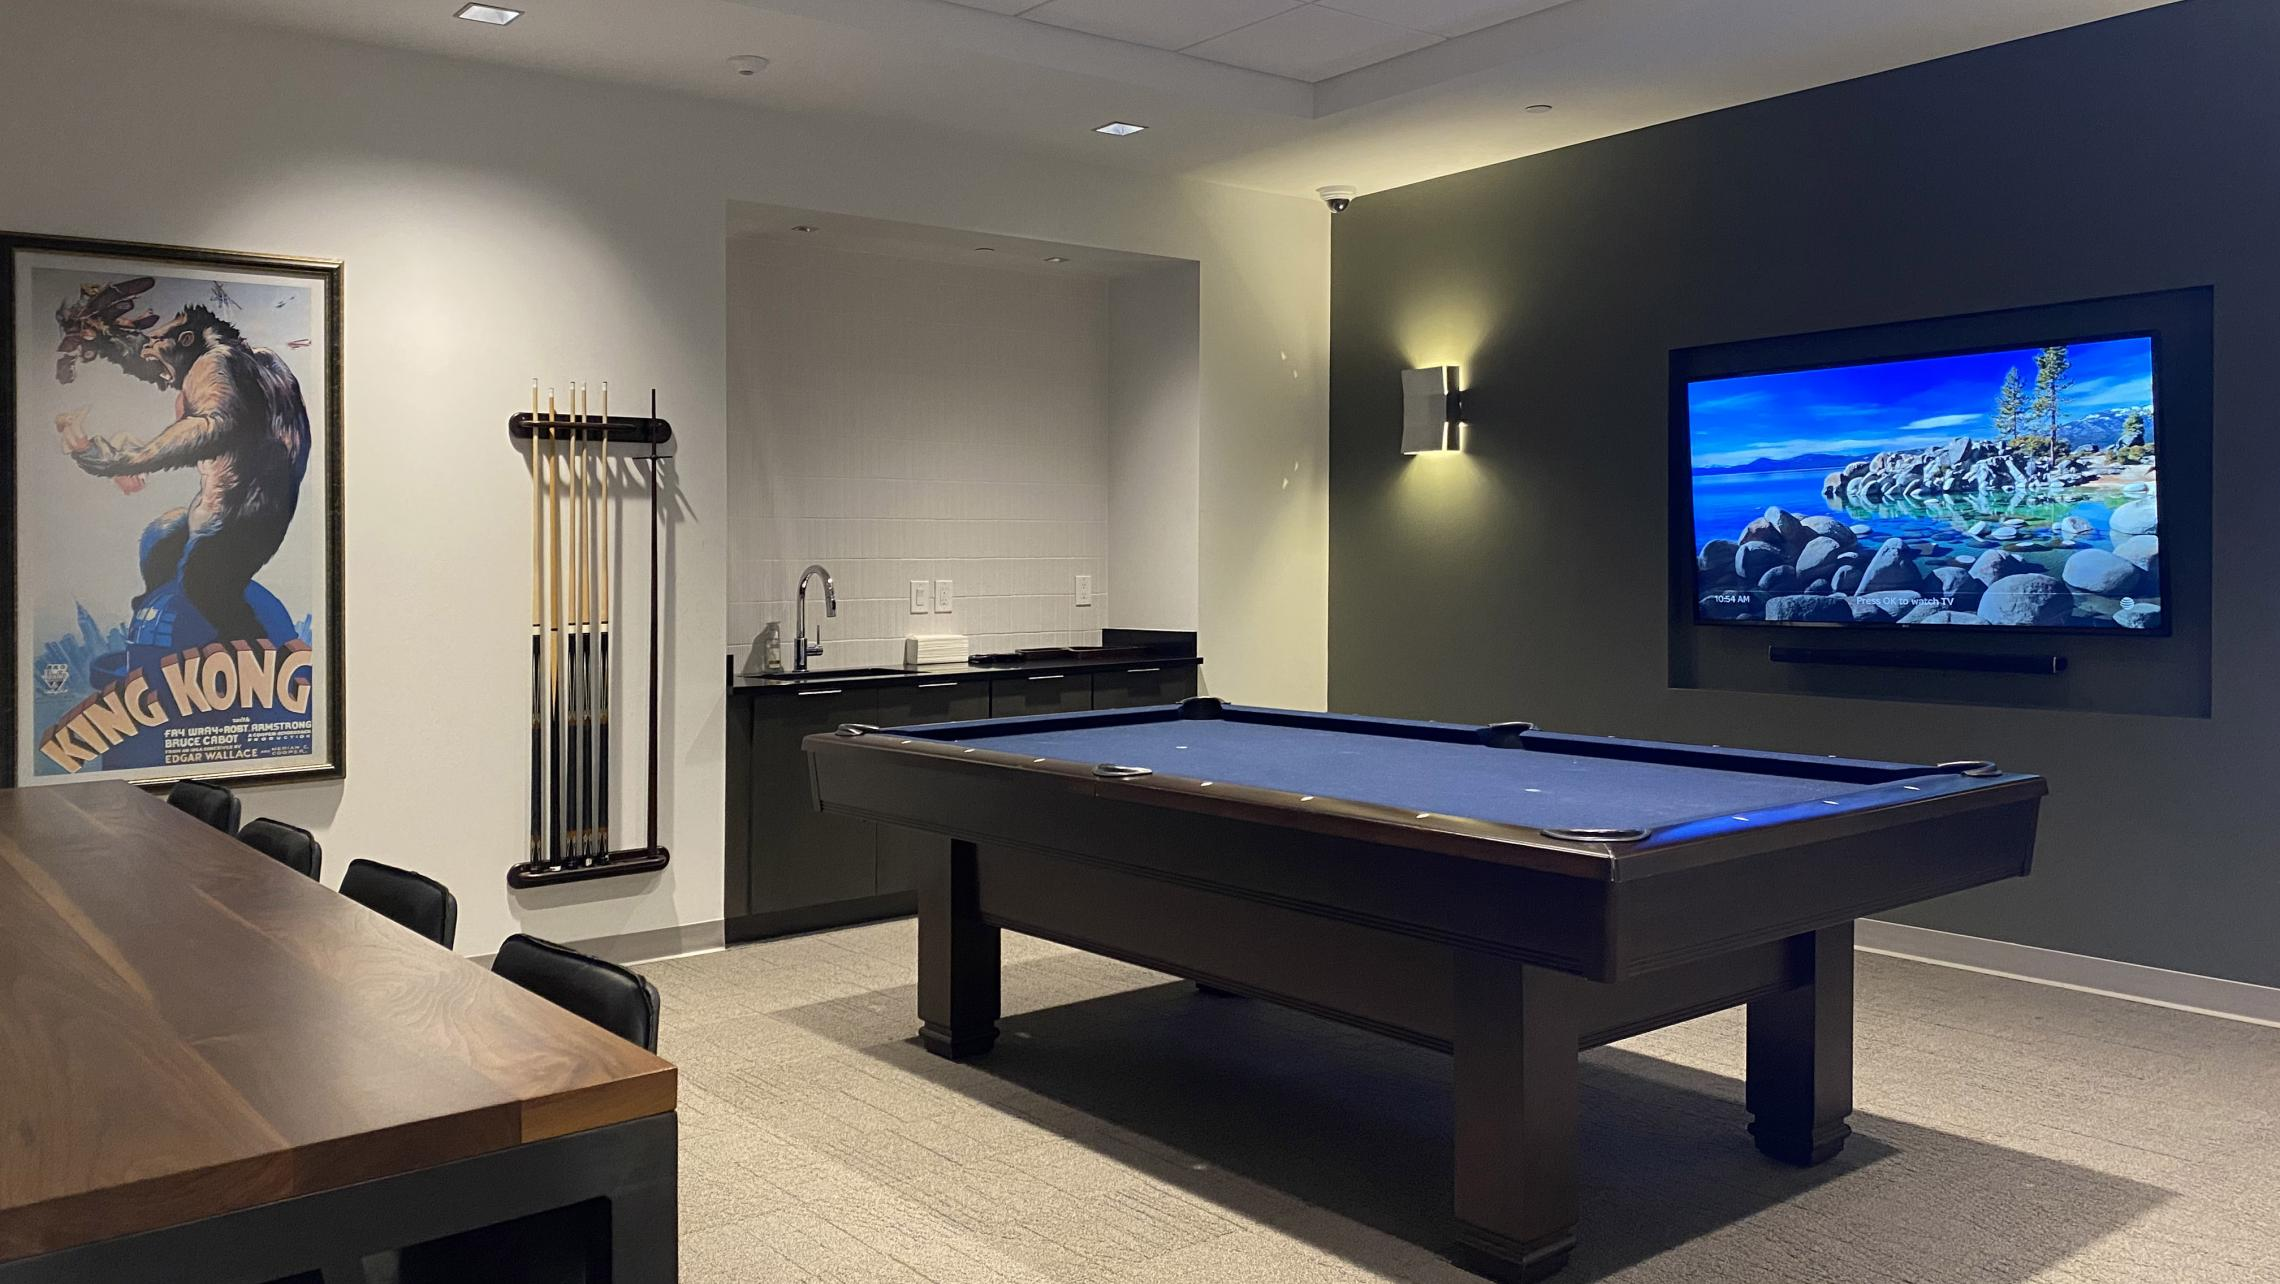 The-Pressman-Club-Room-Billiards-Downtown-Madison-Moder-Upscale-Apartments-Luxury-Design-Dogs-Cats-City-Lake-Views-Balcony-Terrace